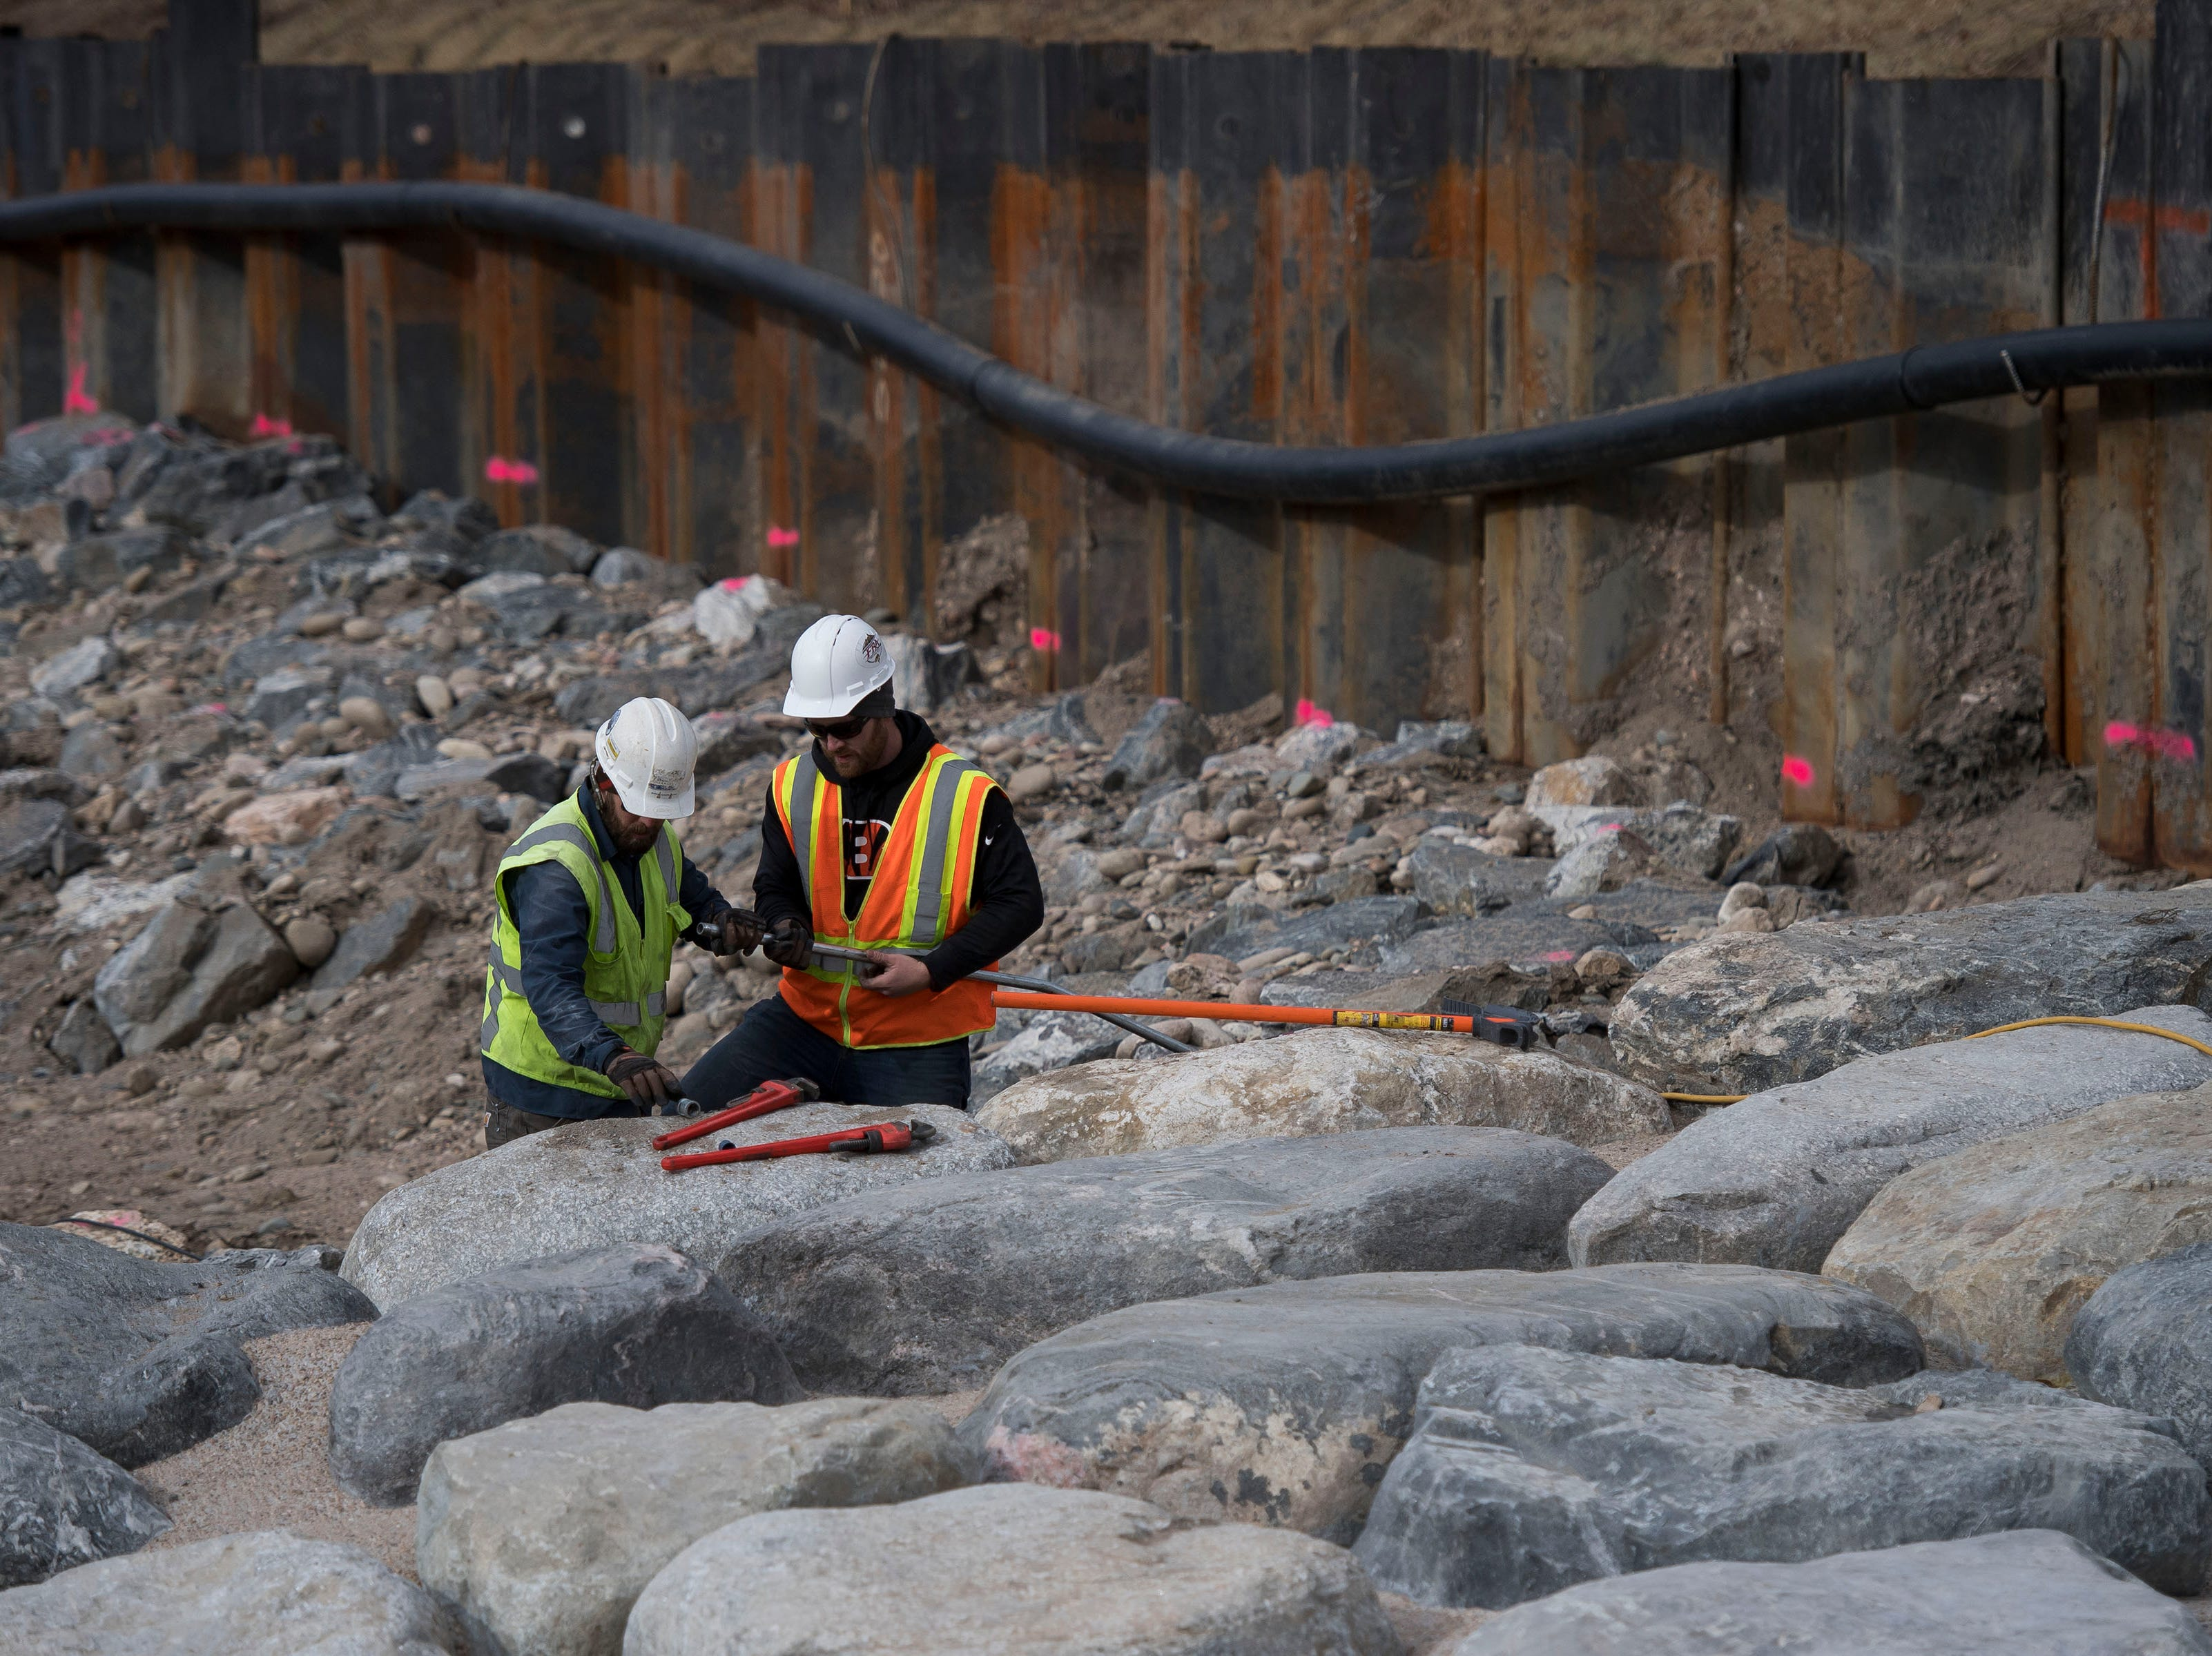 Water & Earth Technologies, Inc. project engineers Erik Carlson and Eric Hess work to install a new flow meter at the base of a wave feature on the riverbed of the river on Wednesday, Jan. 23, 2019, at the future site of the Poudre River Whitewater Park just South of North College Avenue in Fort Collins, Colo.